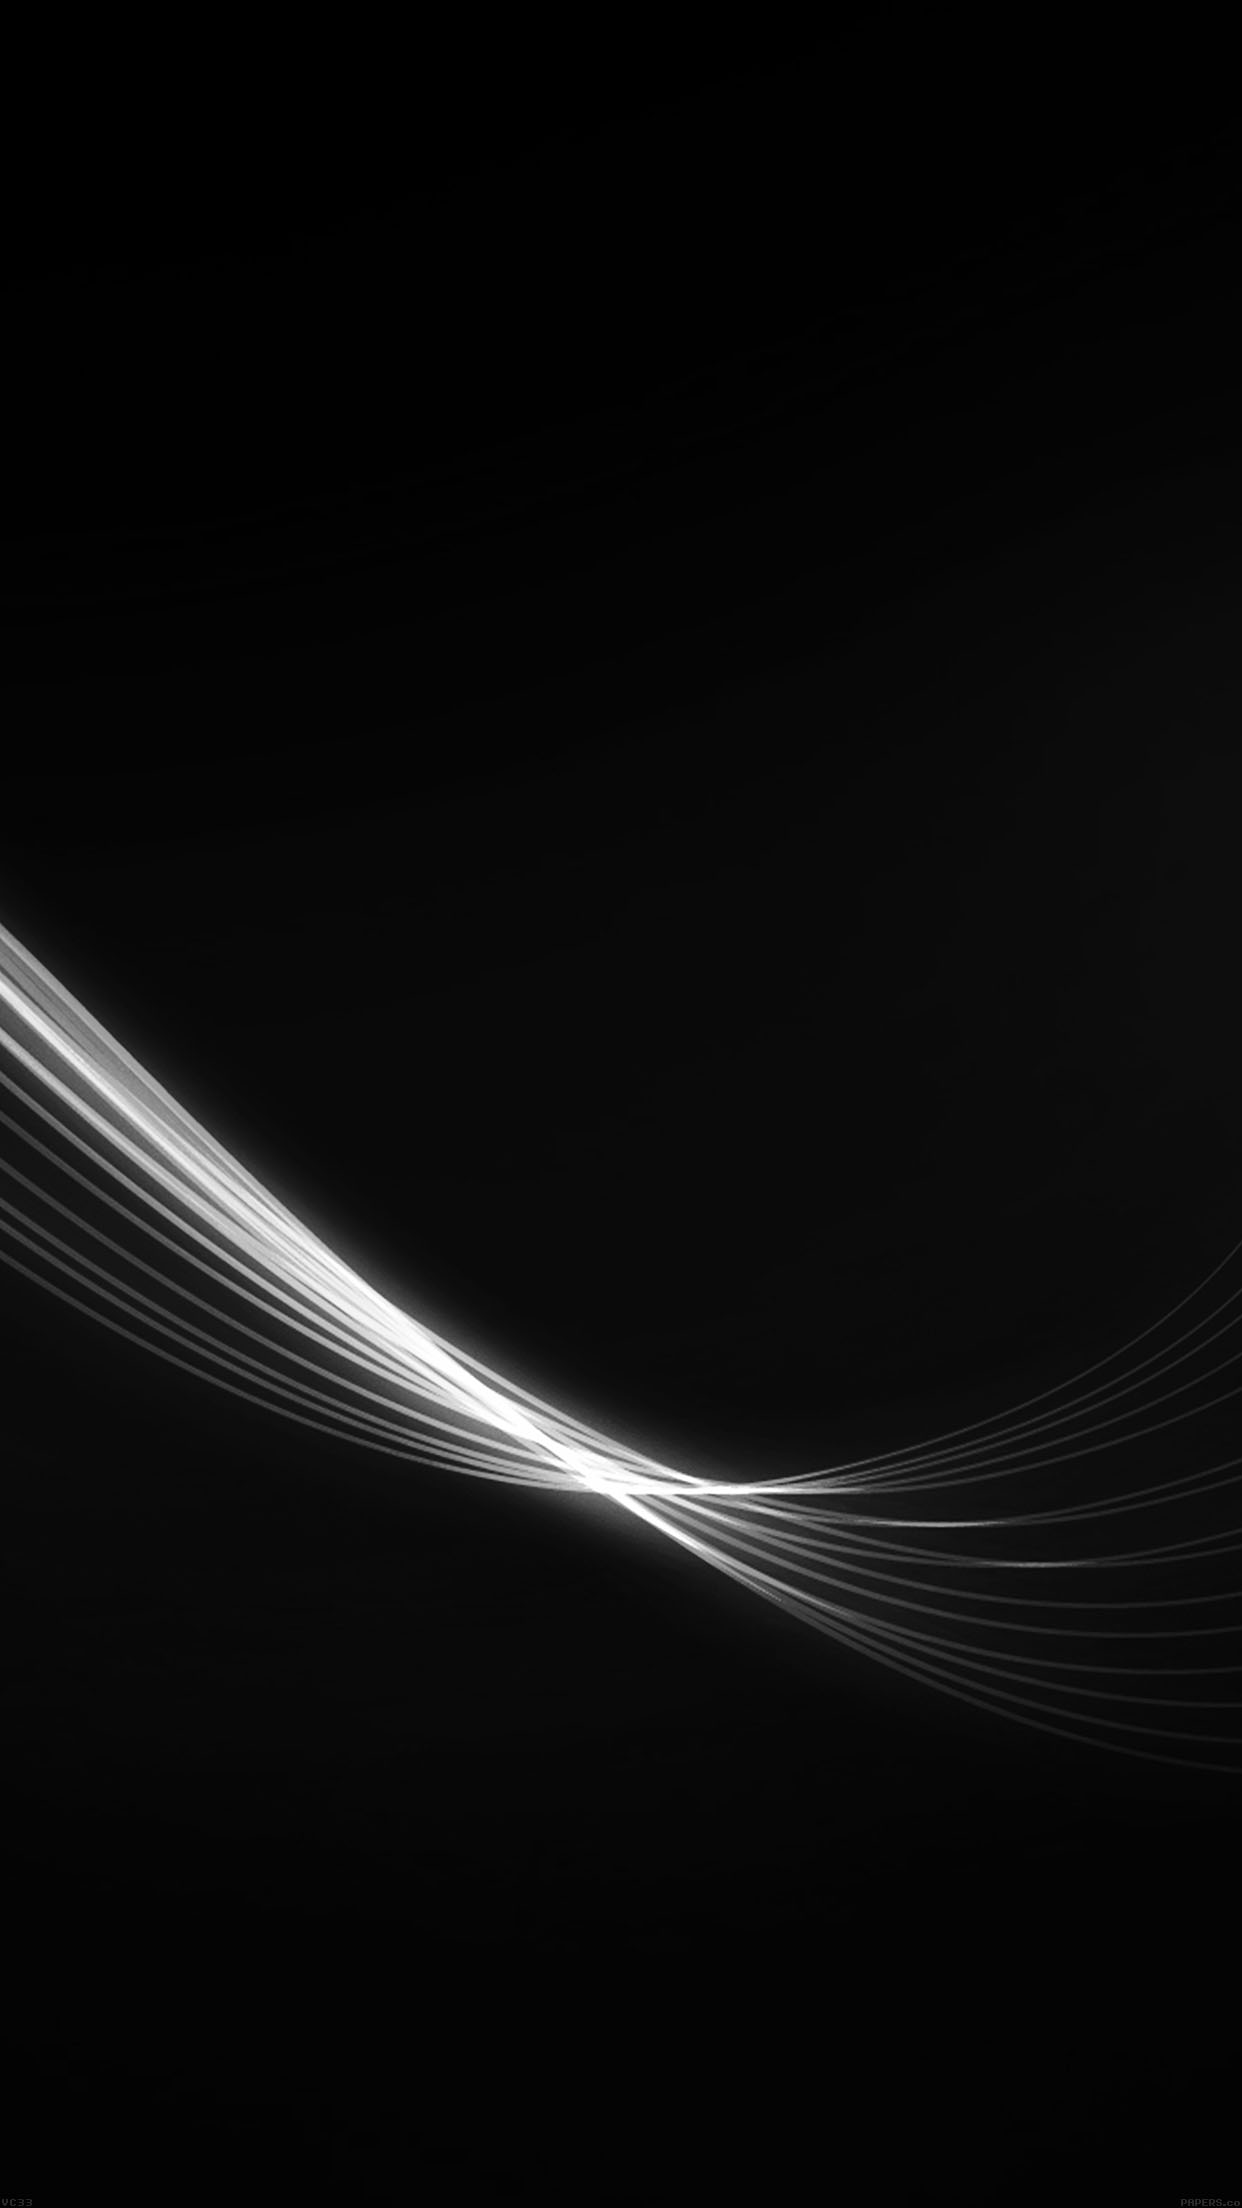 Feather Abstract Black Dark Pattern Android Wallpaper